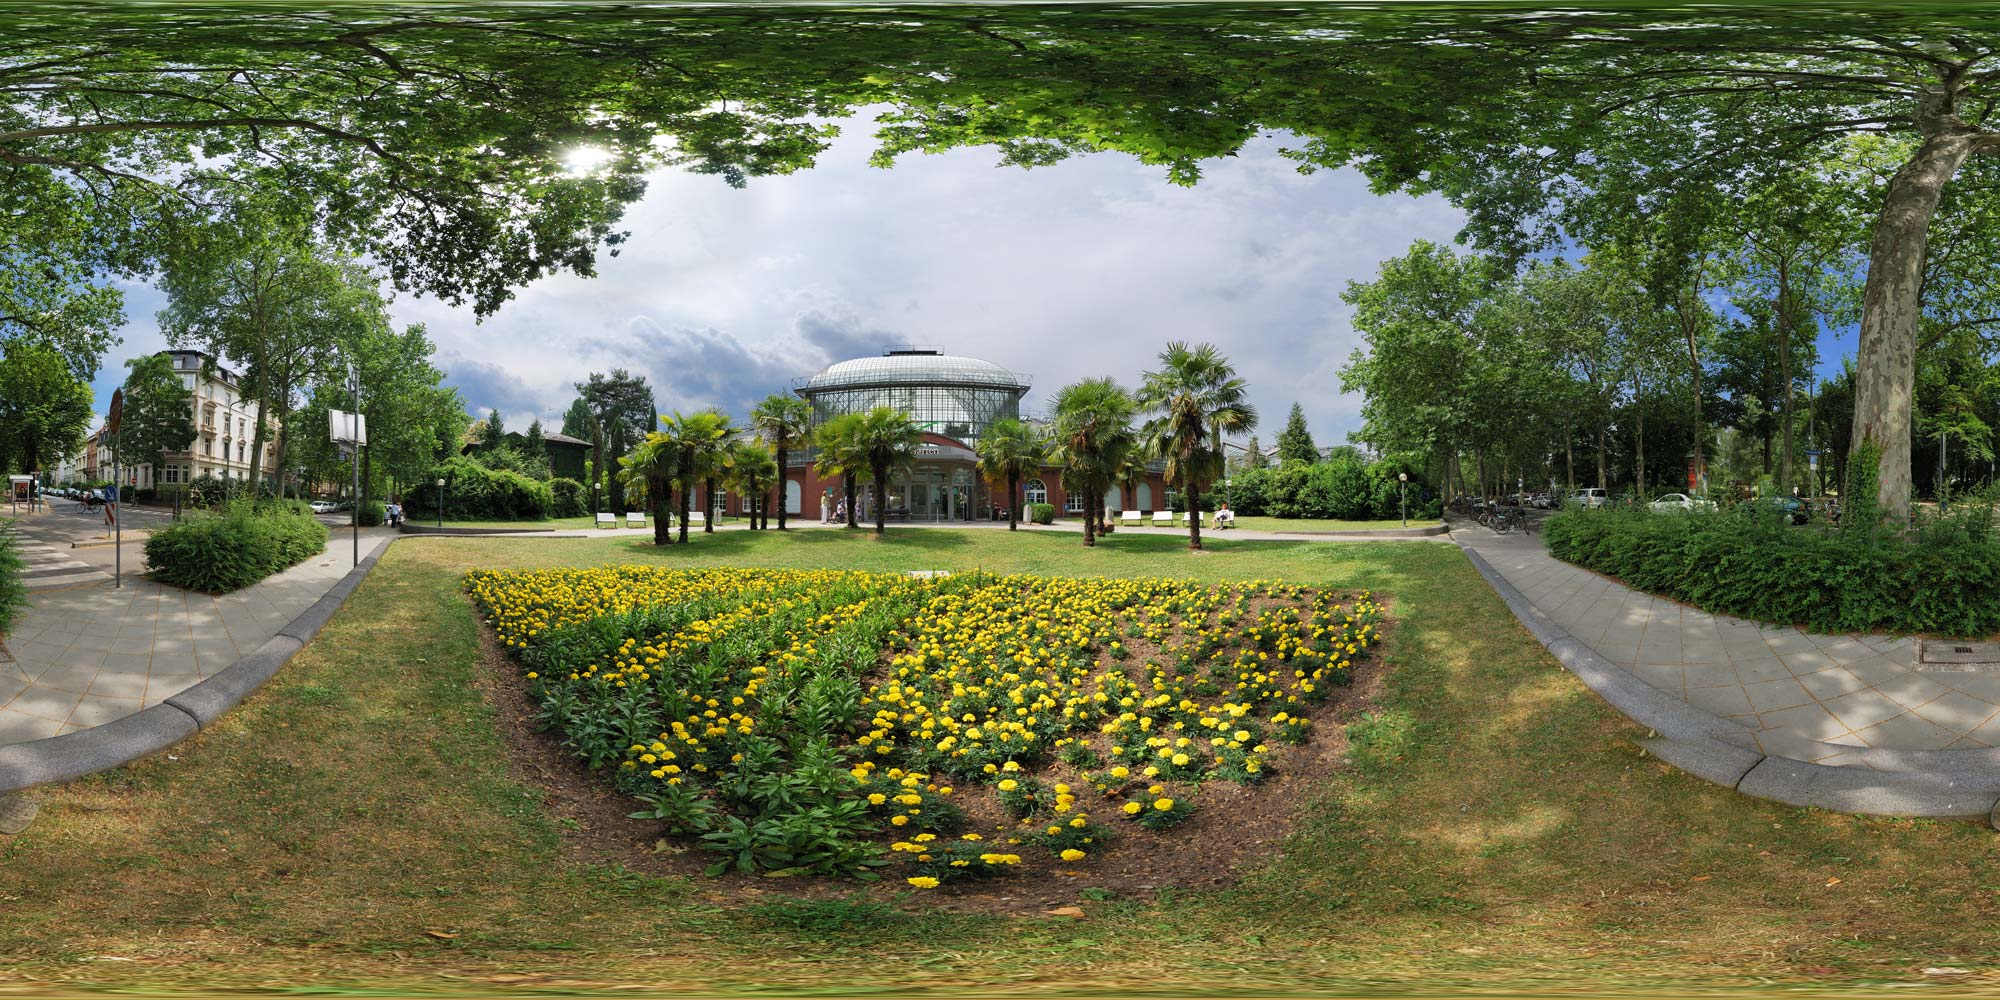 kubische panoramen panorama foto frankfurt am main botanischer garten. Black Bedroom Furniture Sets. Home Design Ideas